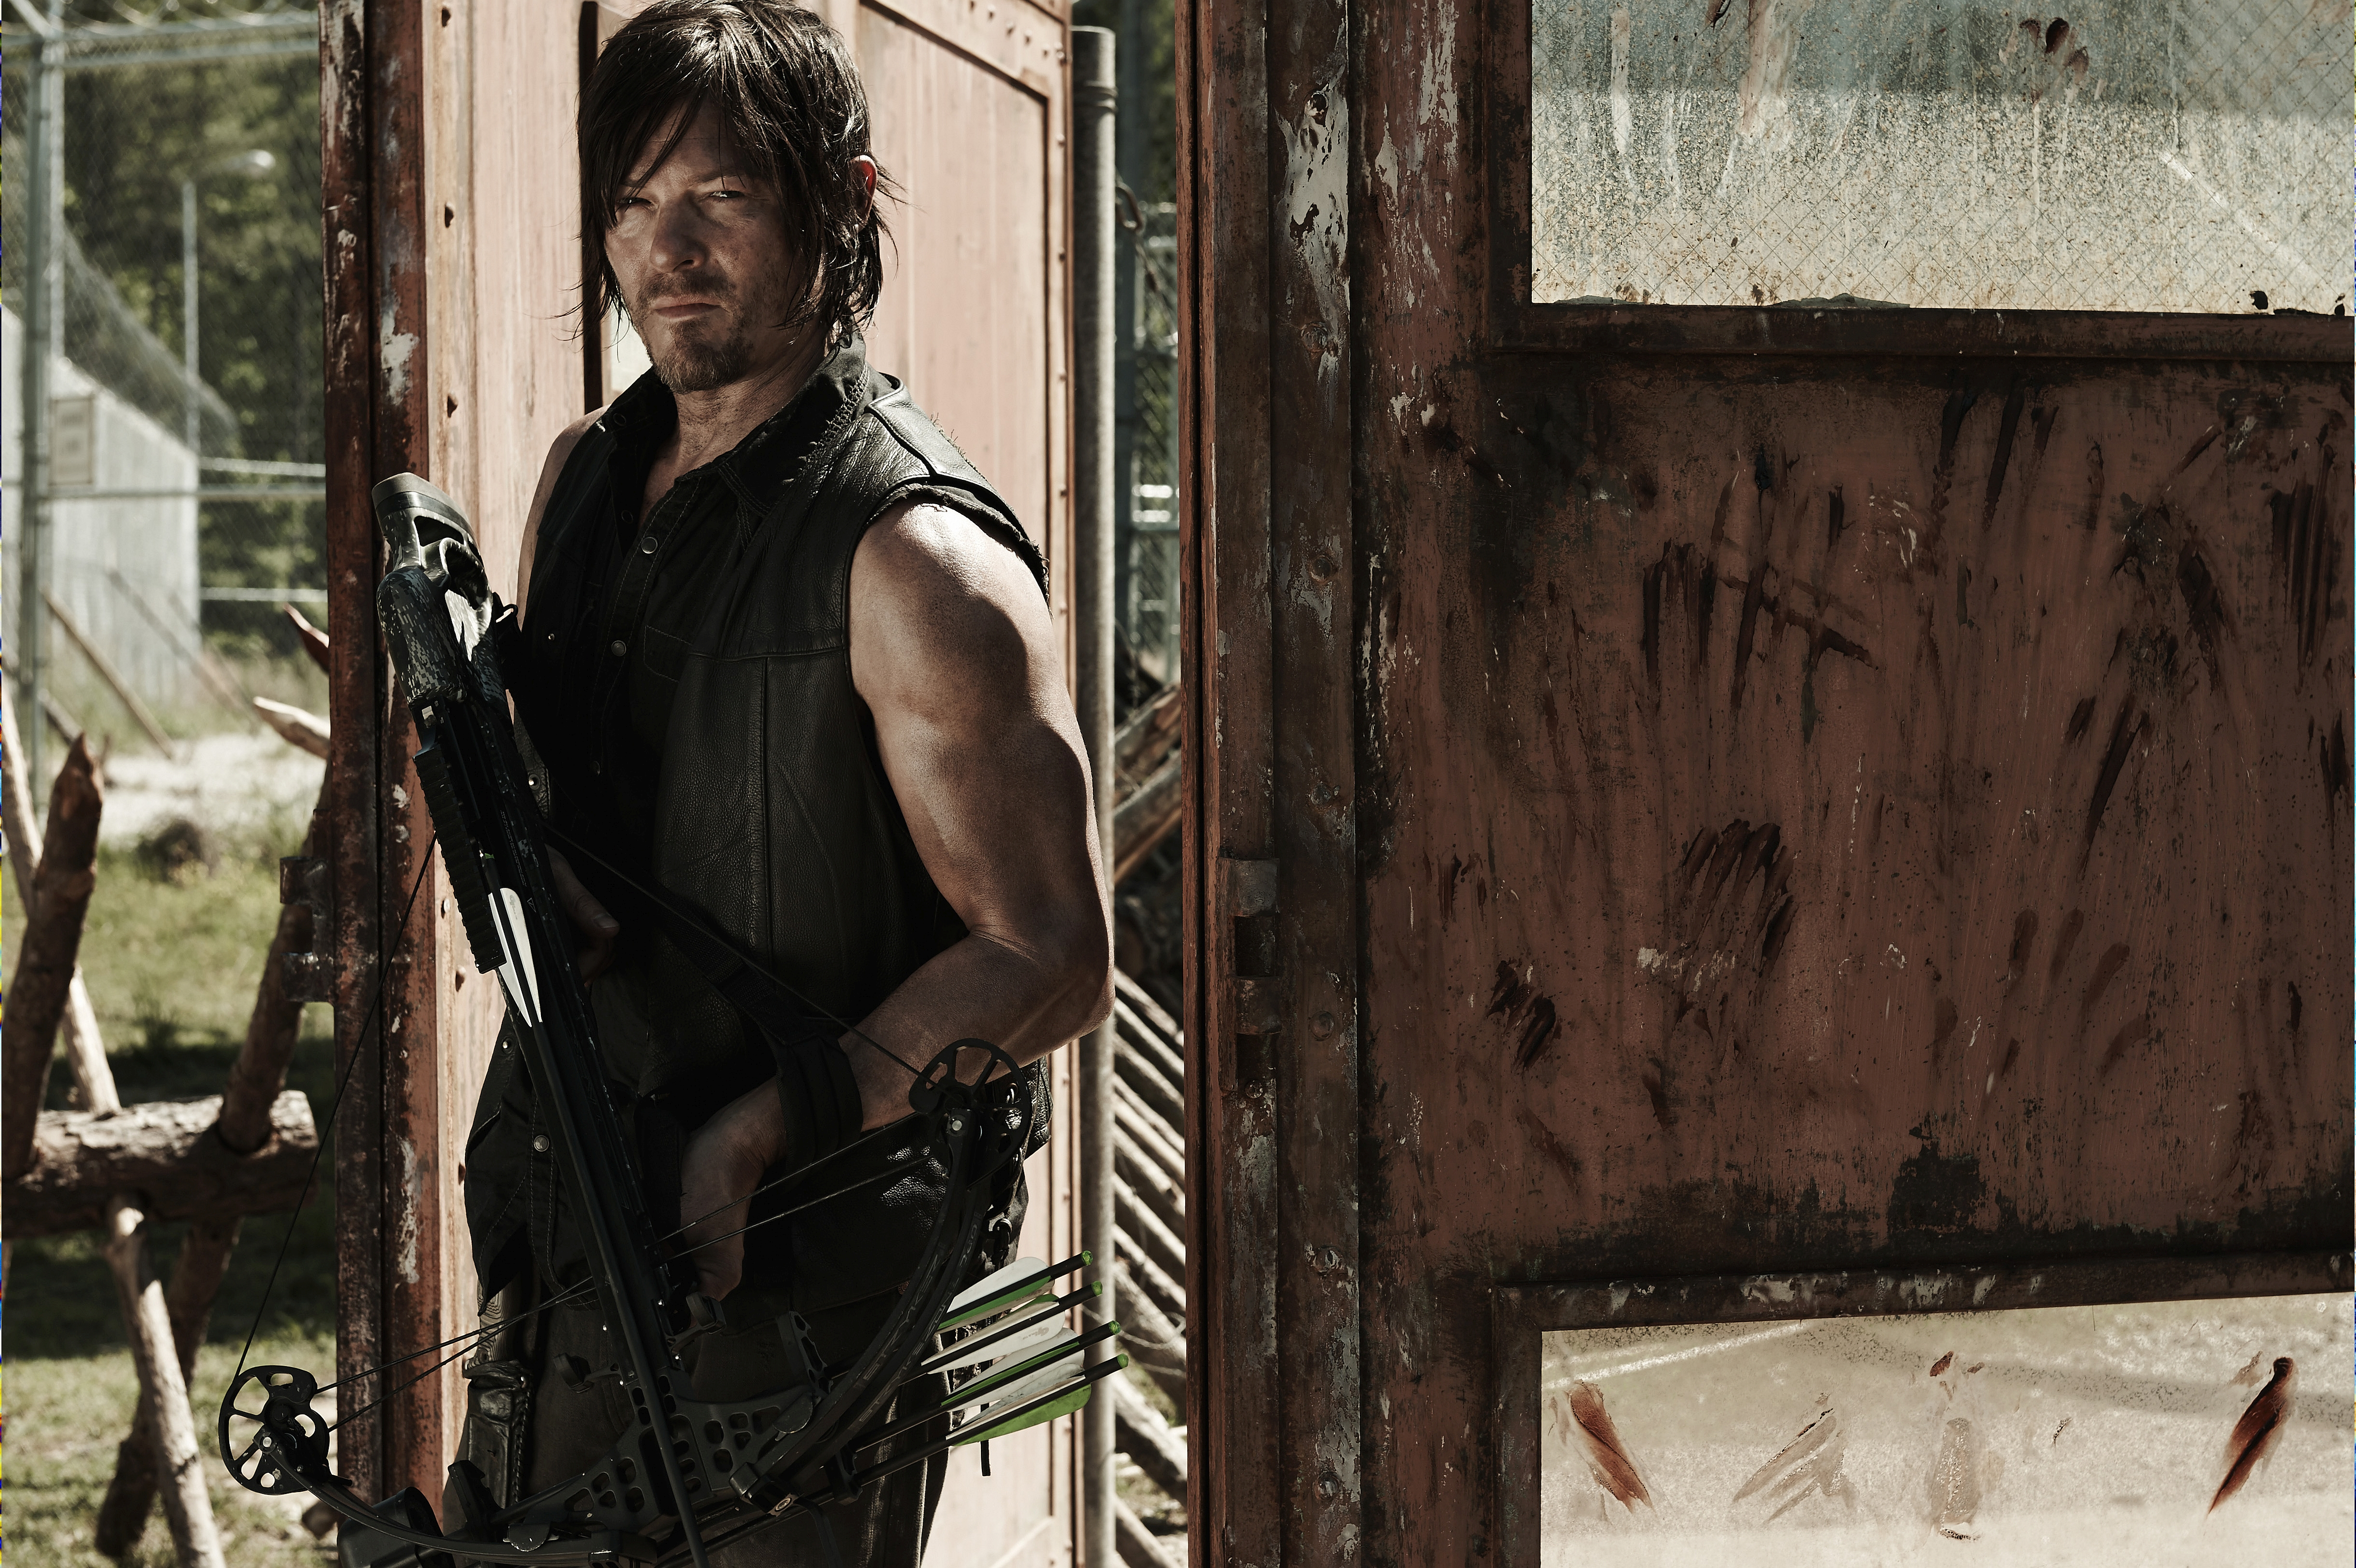 Pictures of the walking dead